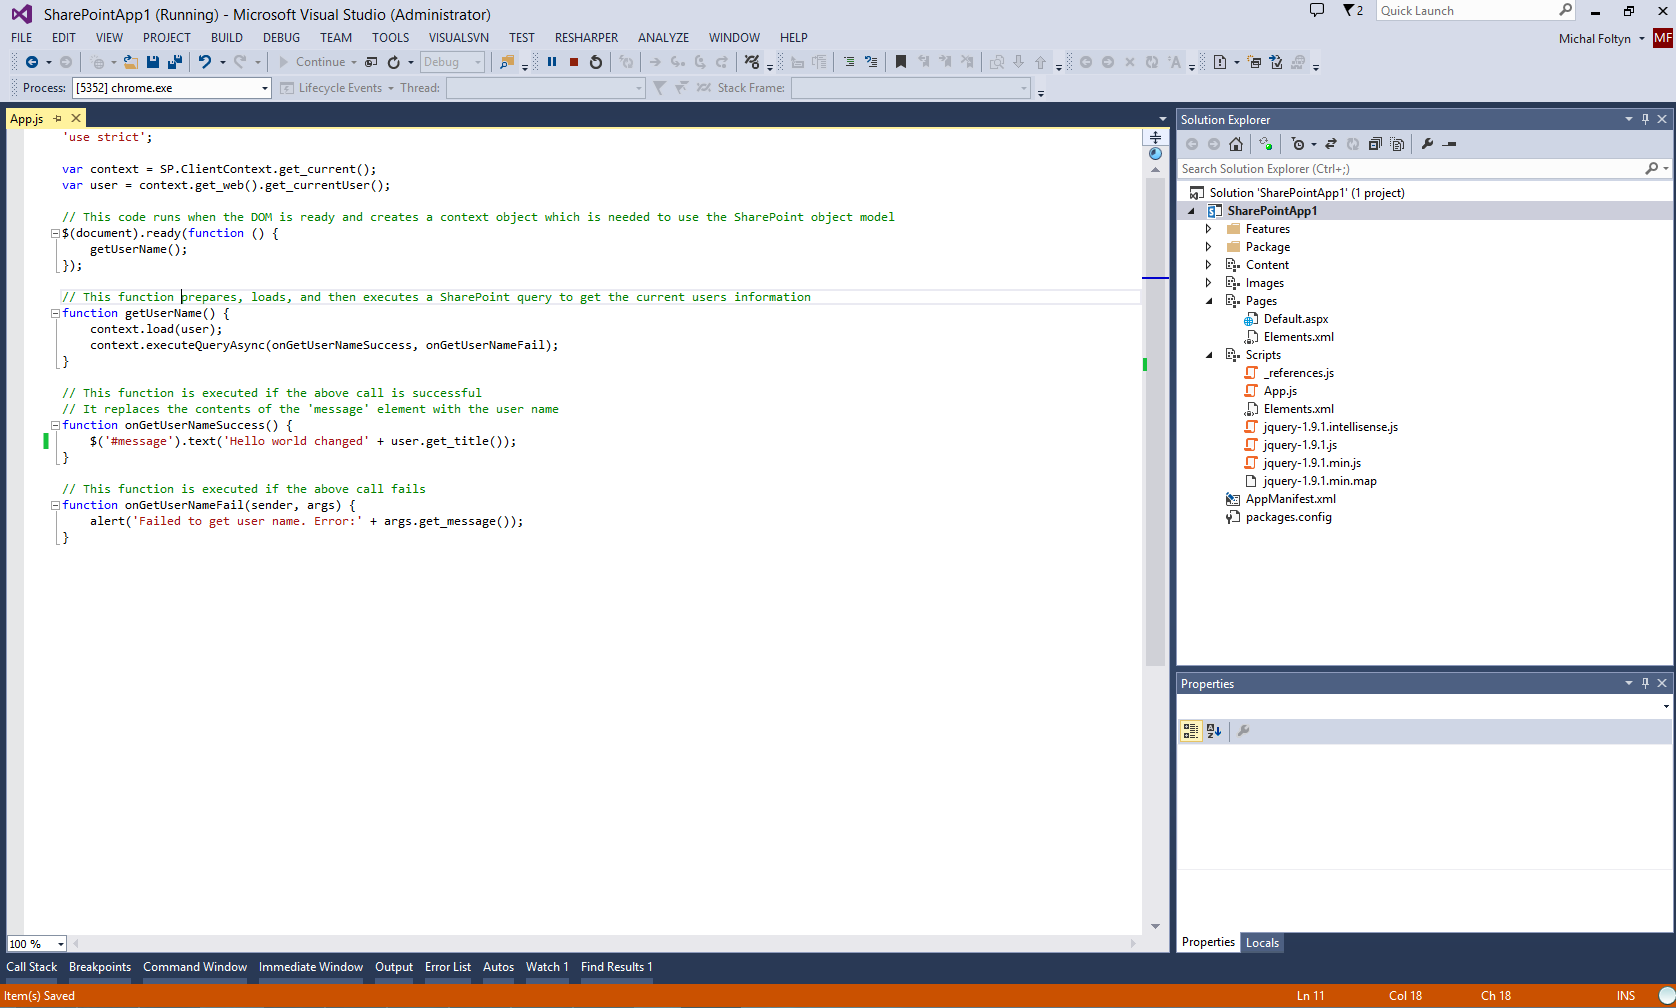 sp_app_visualStudio_upload